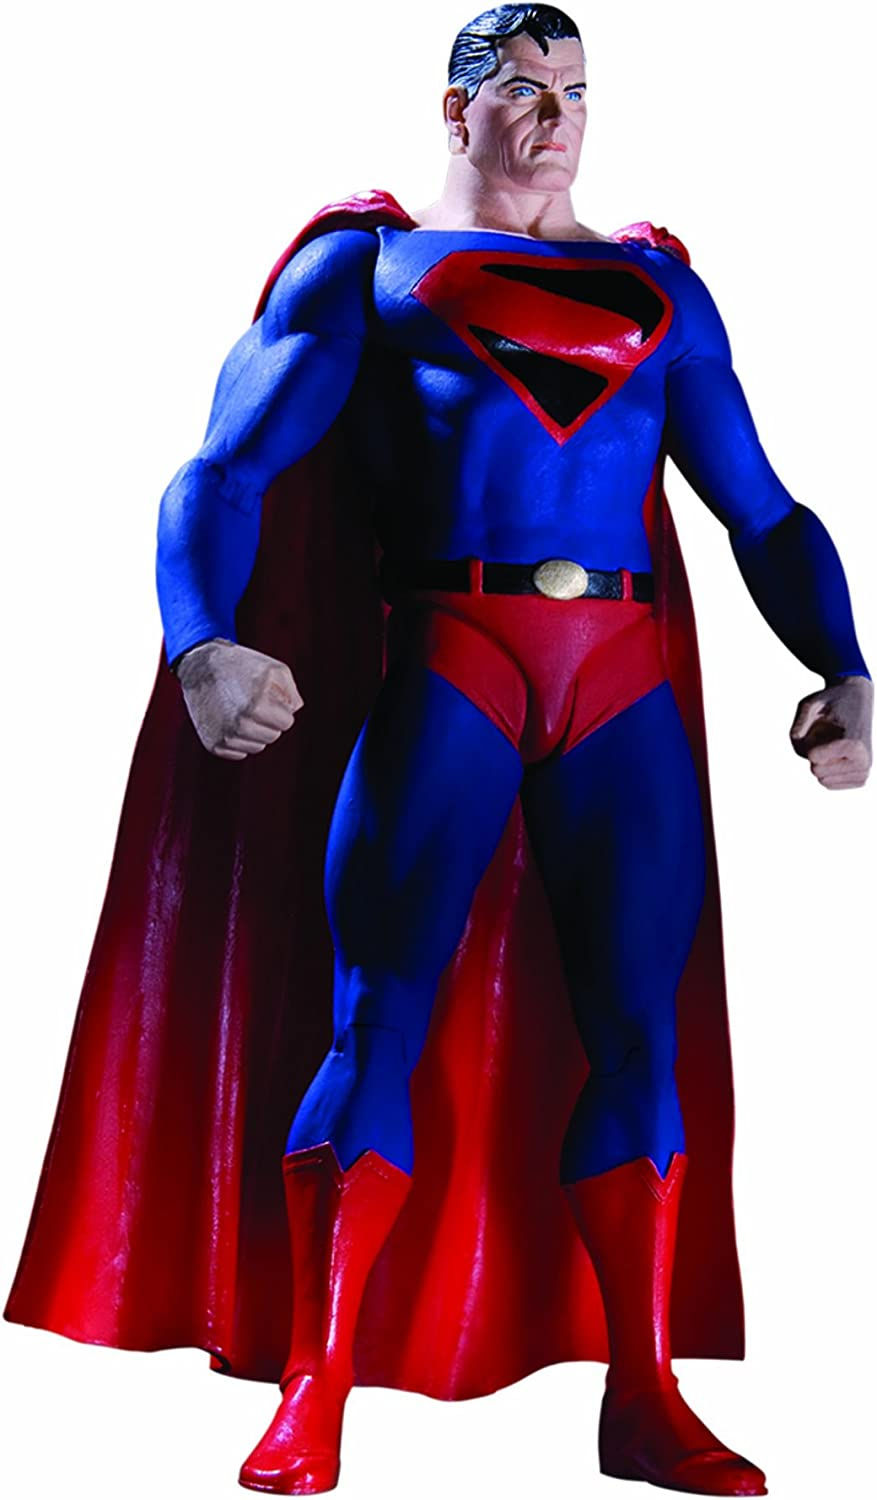 Justice Society of America  Series 2  Kingdom Come Superman Action Figure